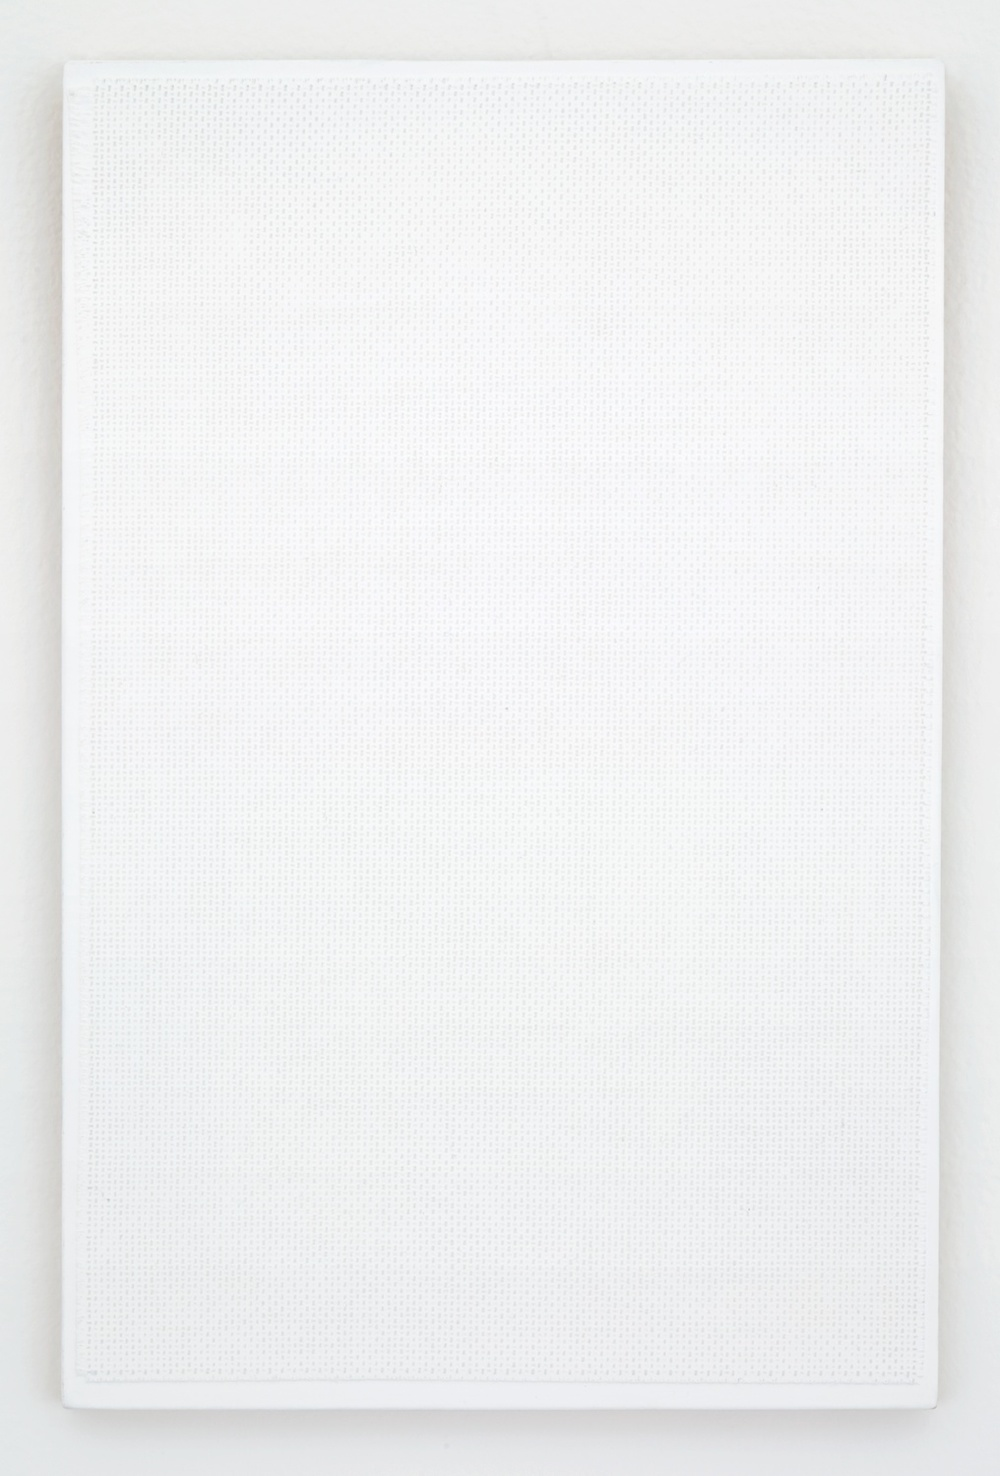 Michelle Grabner  Untitled  2012 Linen and gesso on panel 15 ½h x 10w in MGrab259